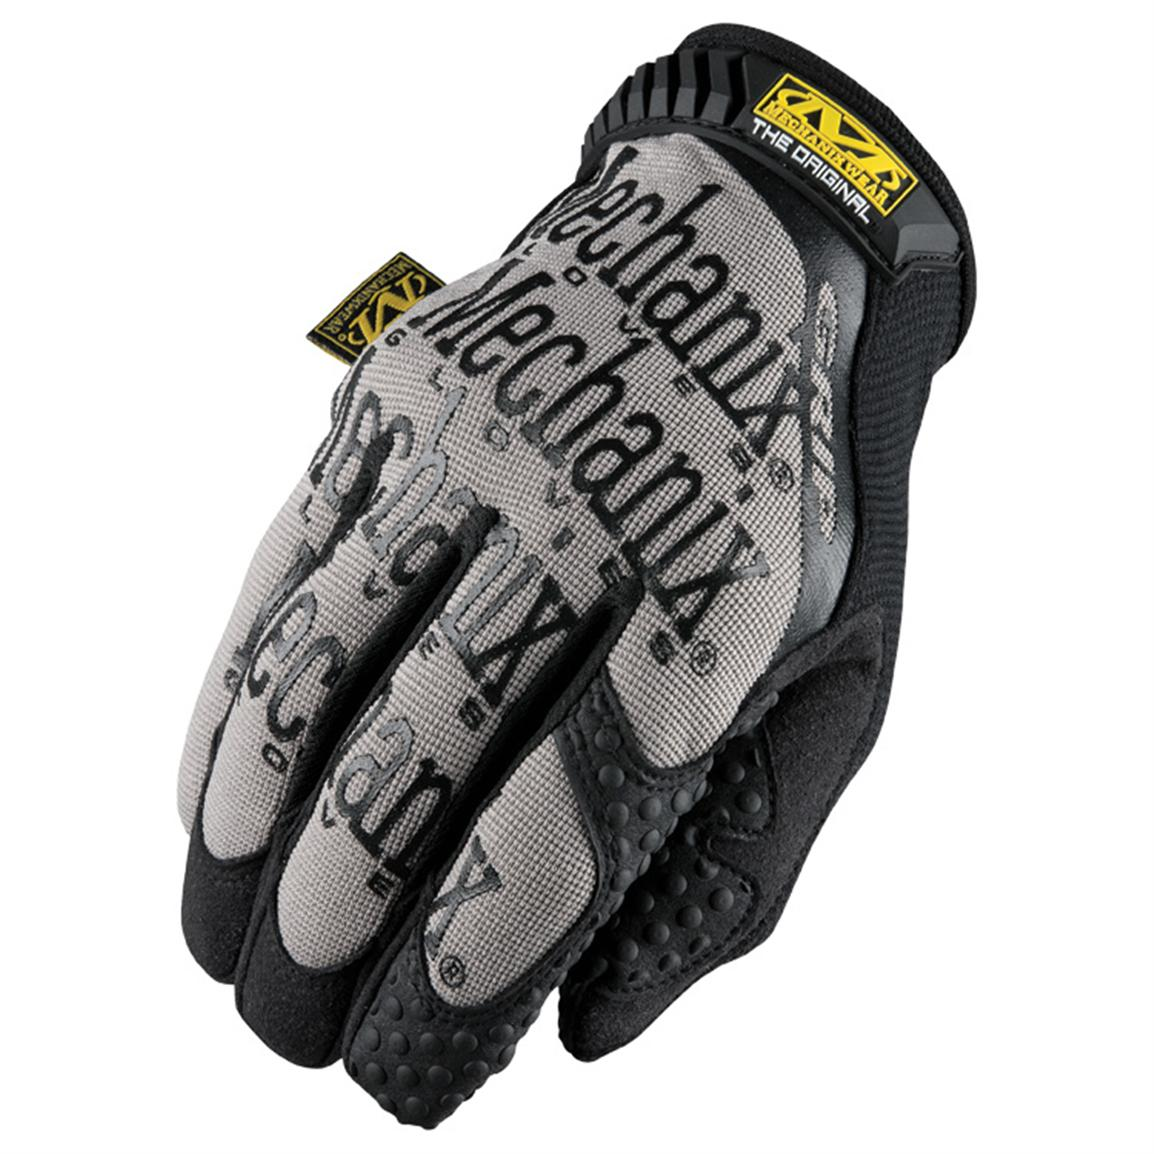 Mechanix Wear® The Original® Grip Gloves, Black